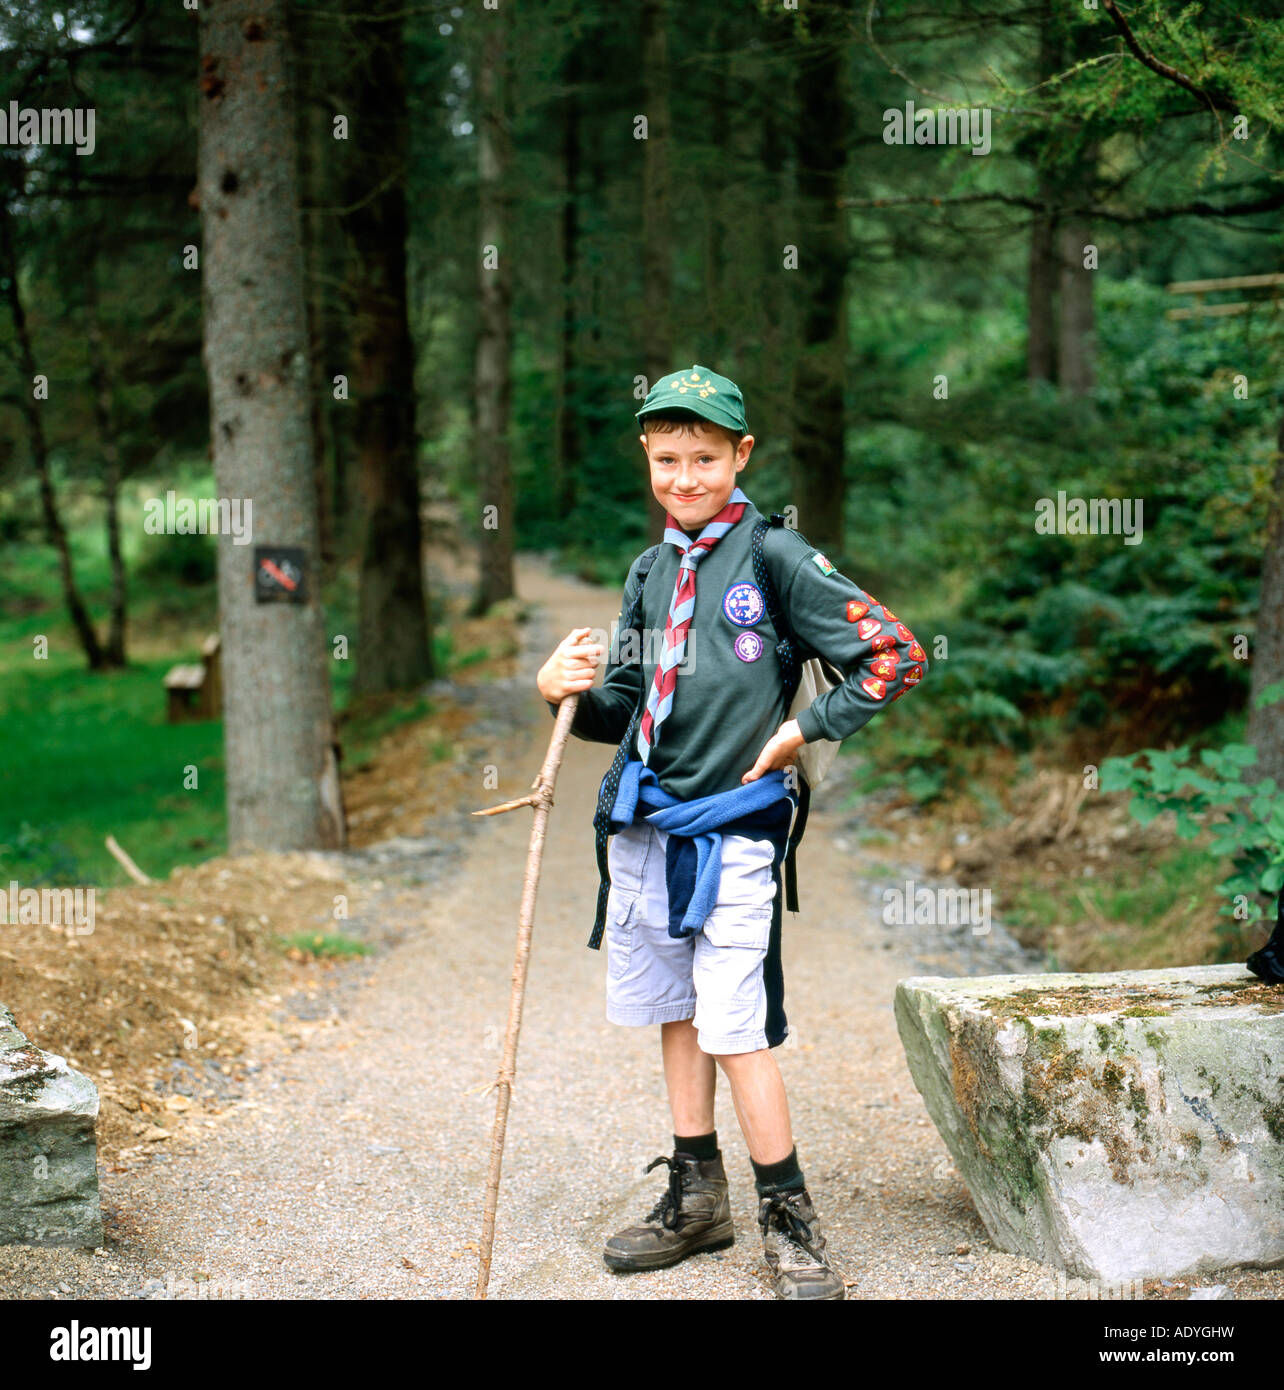 Boy Scout Uk Stock Photos &- Boy Scout Uk Stock Images - Alamy